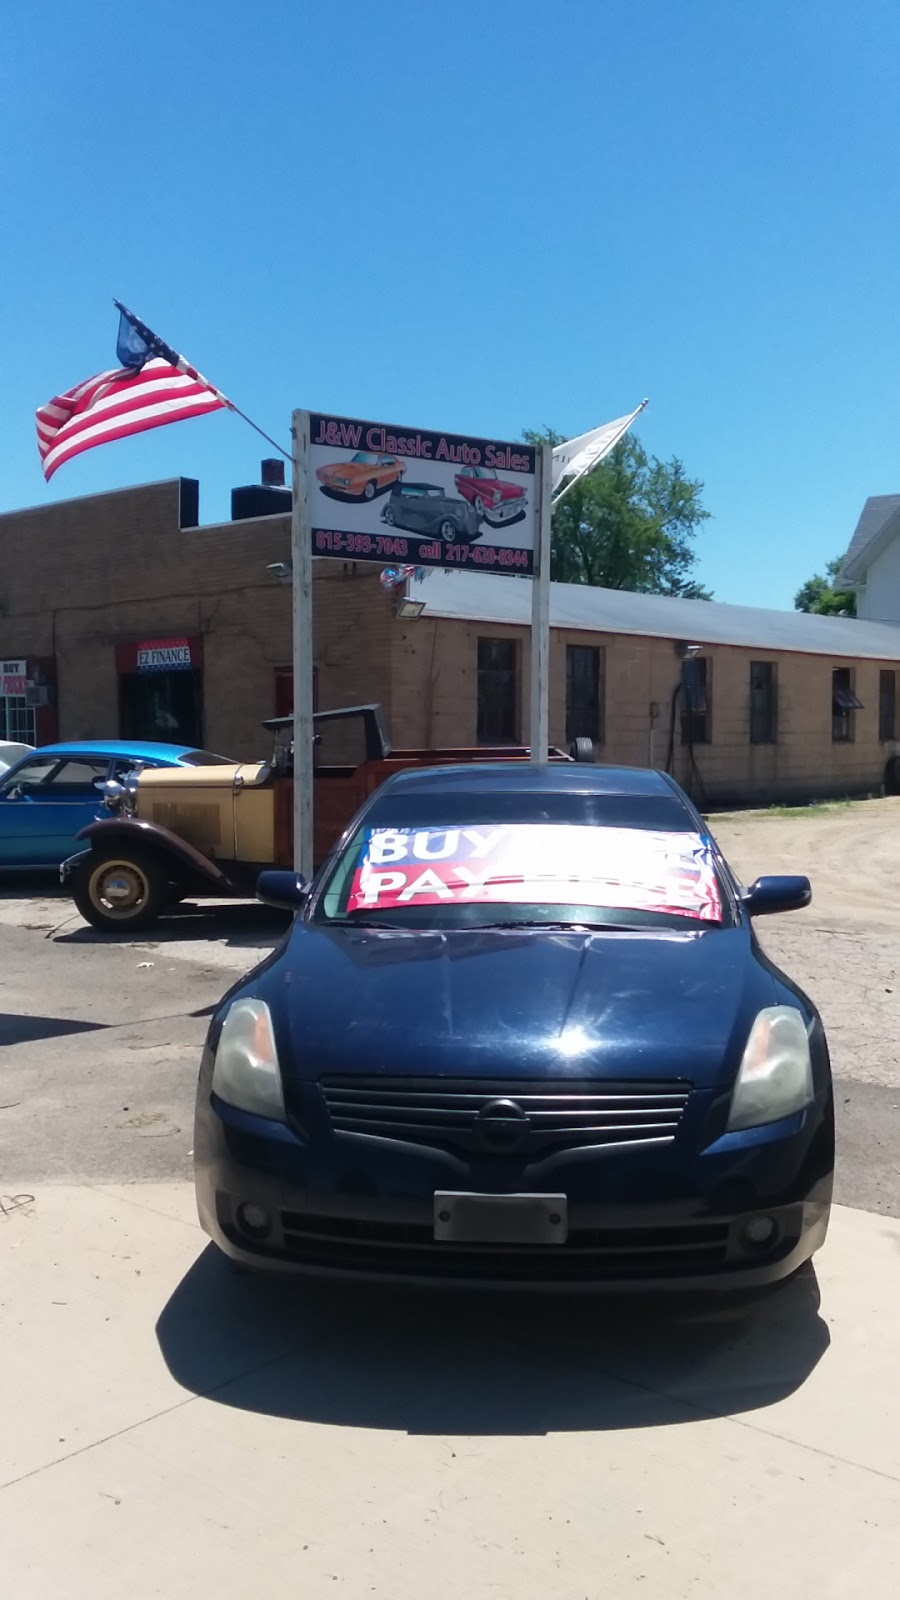 J&W Classic Auto Sales Ez Financing and auto repair | car dealer | 117 E Roosevelt St, Stillman Valley, IL 61084, USA | 2176208344 OR +1 217-620-8344